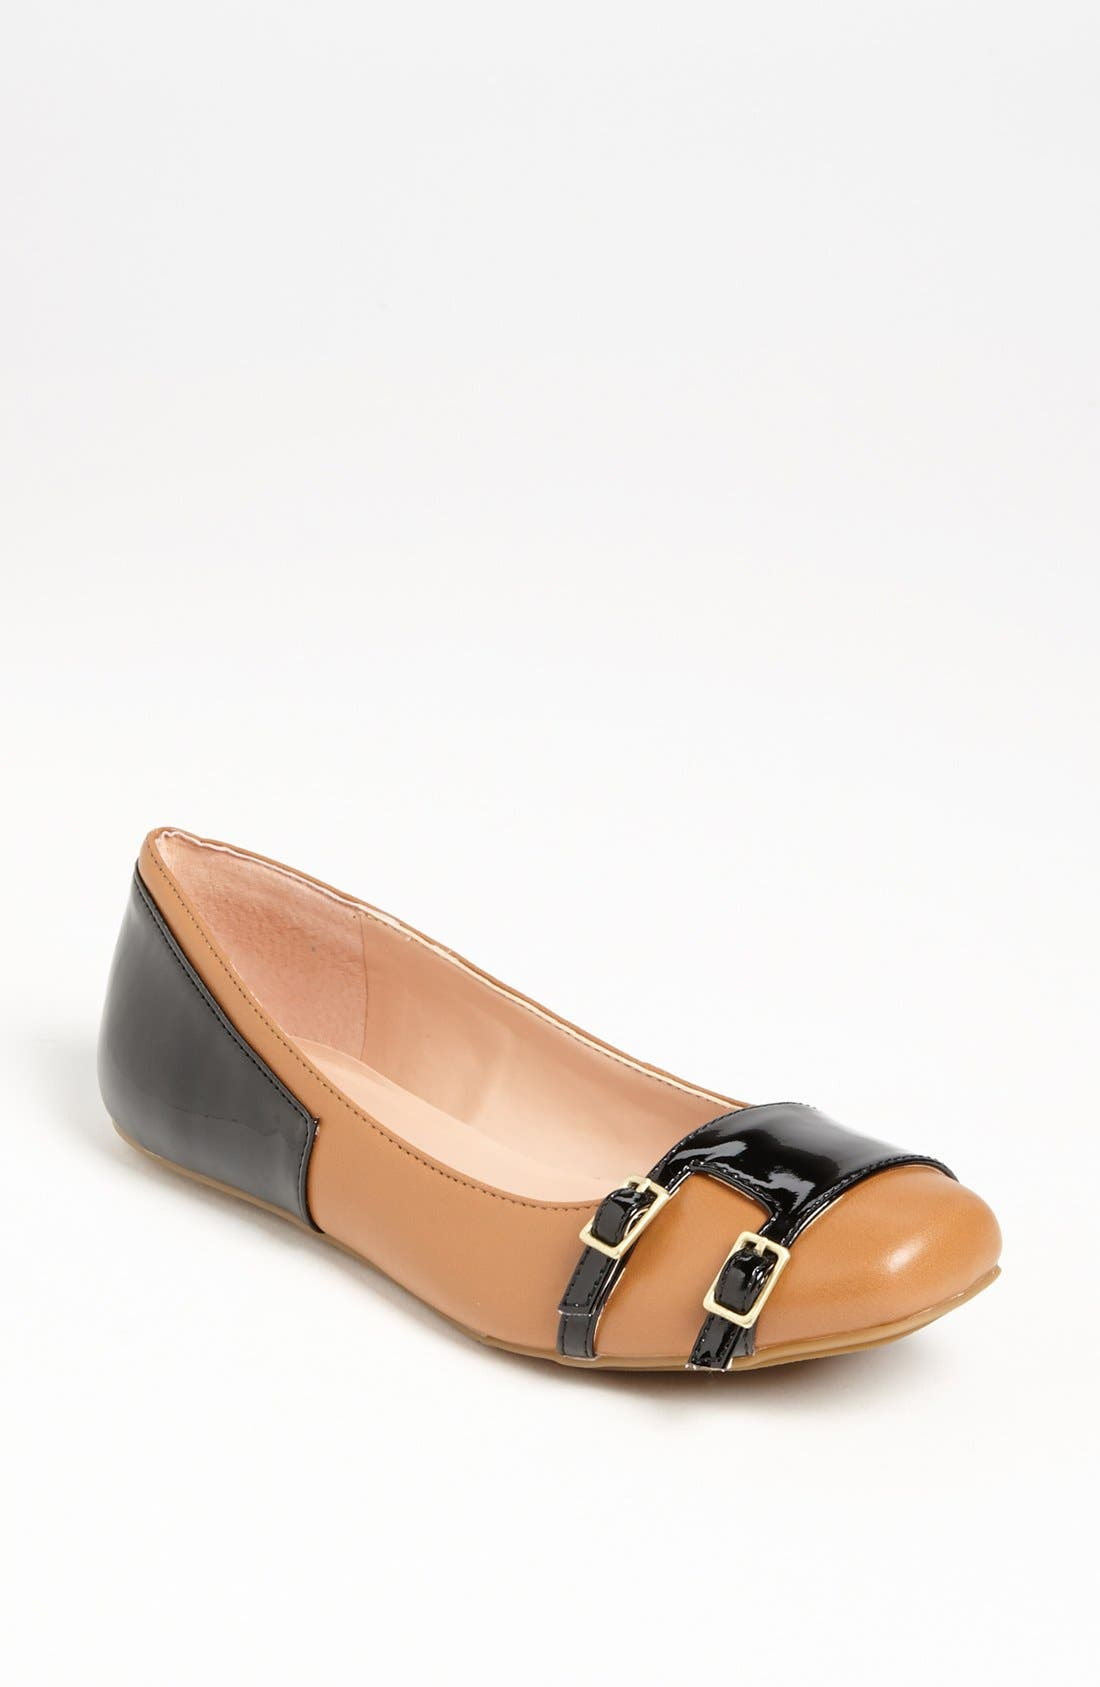 Main Image - Sole Society 'Nia' Flat